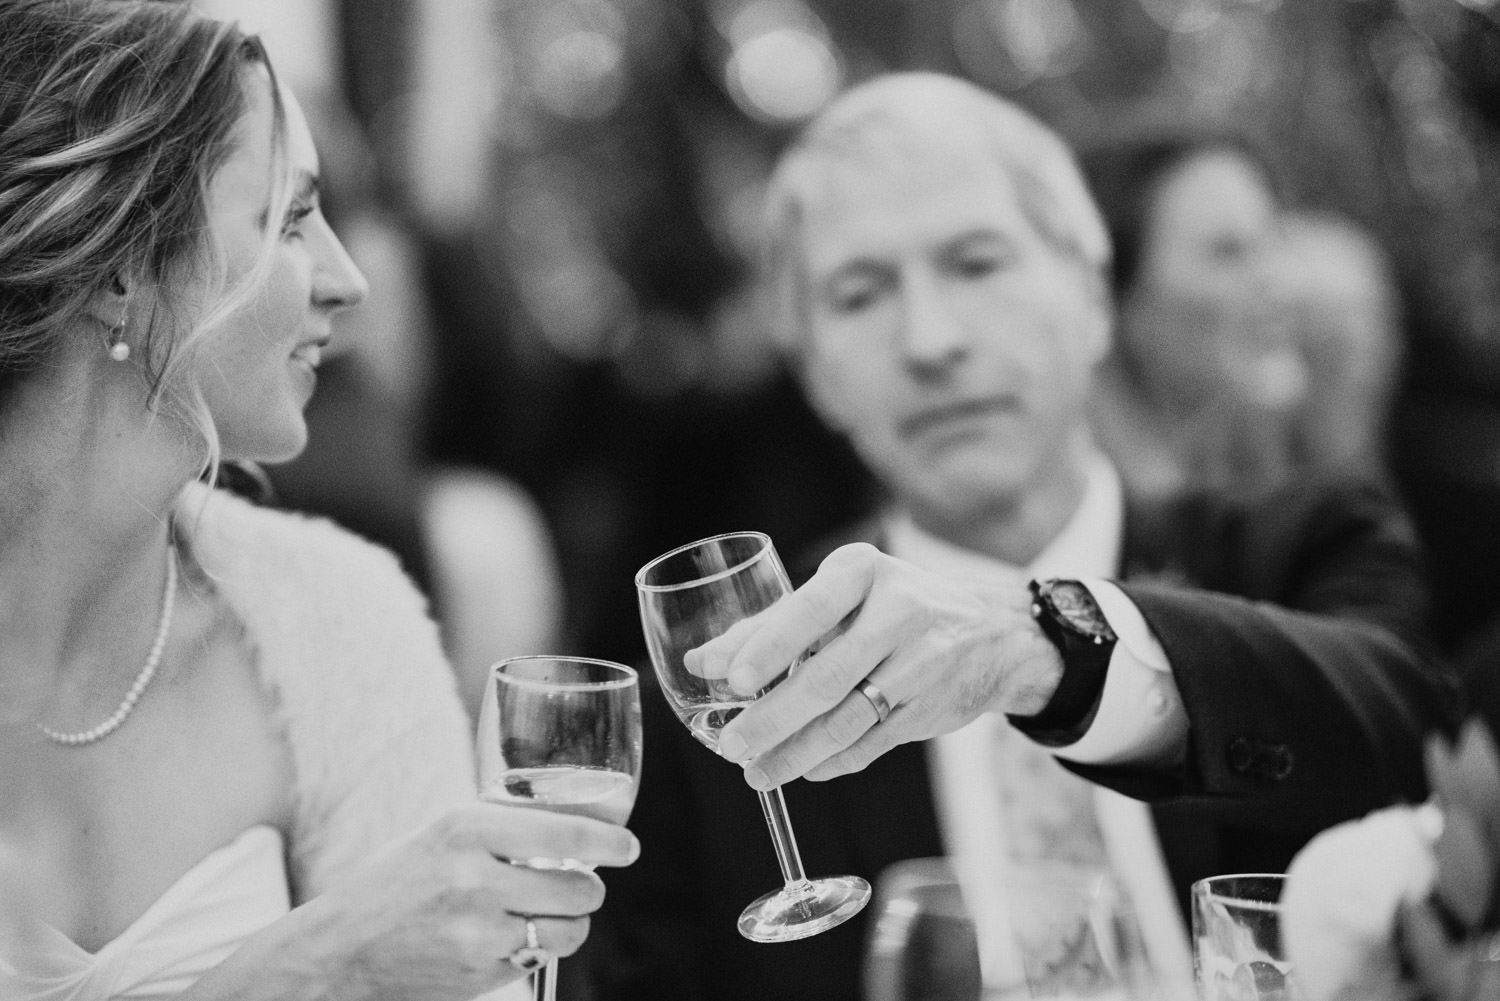 Millcreek Inn wedding black and white bride and groom toasting photo